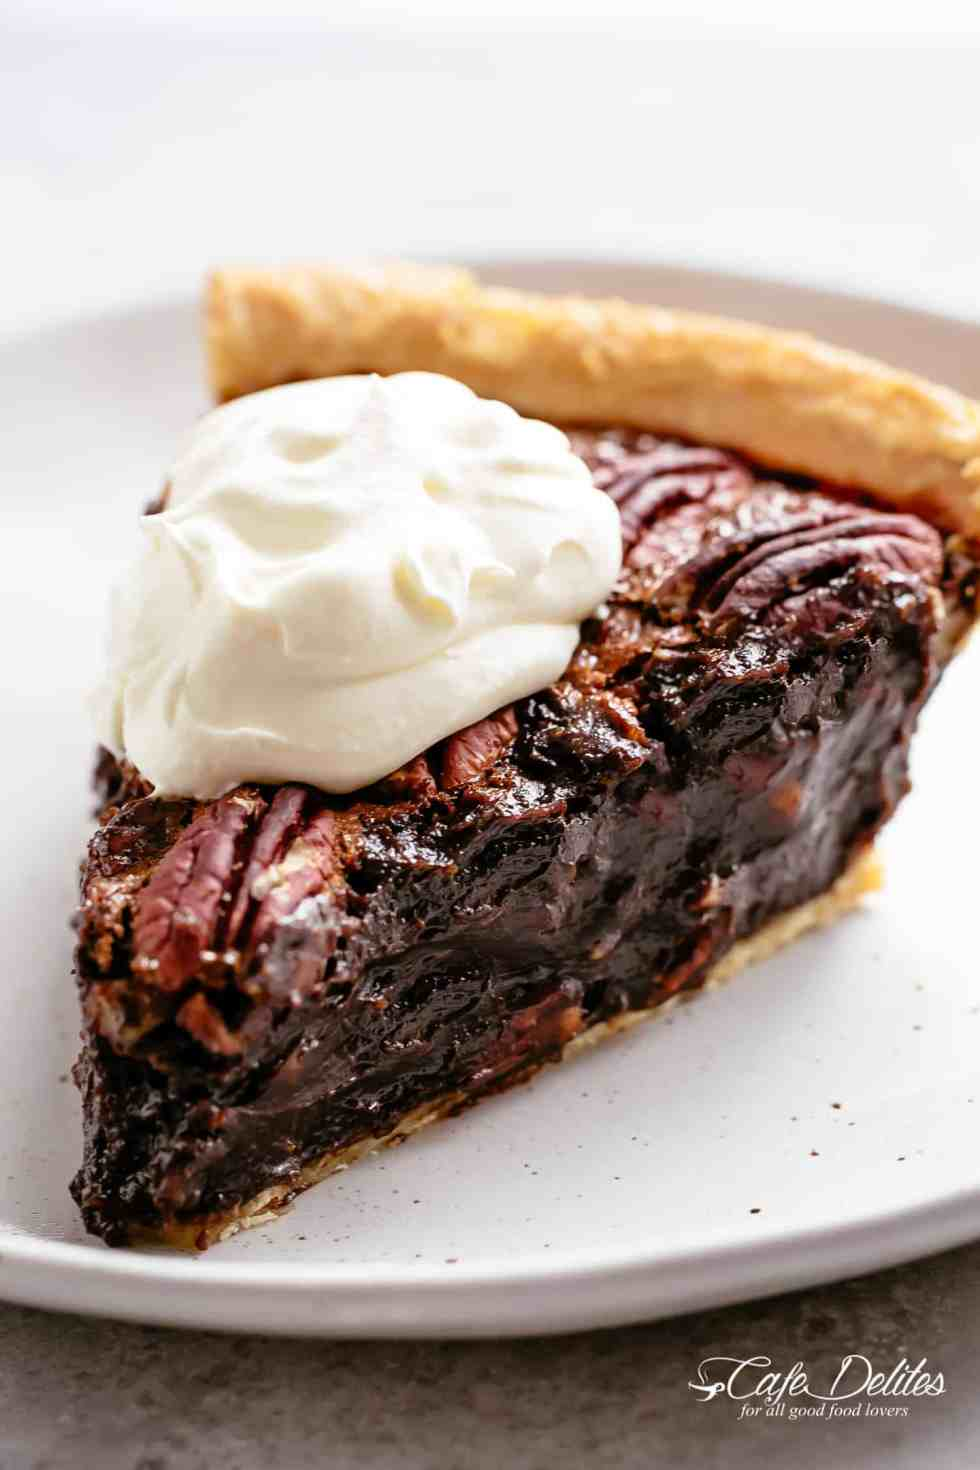 A slice of pecan pie with whipped cream